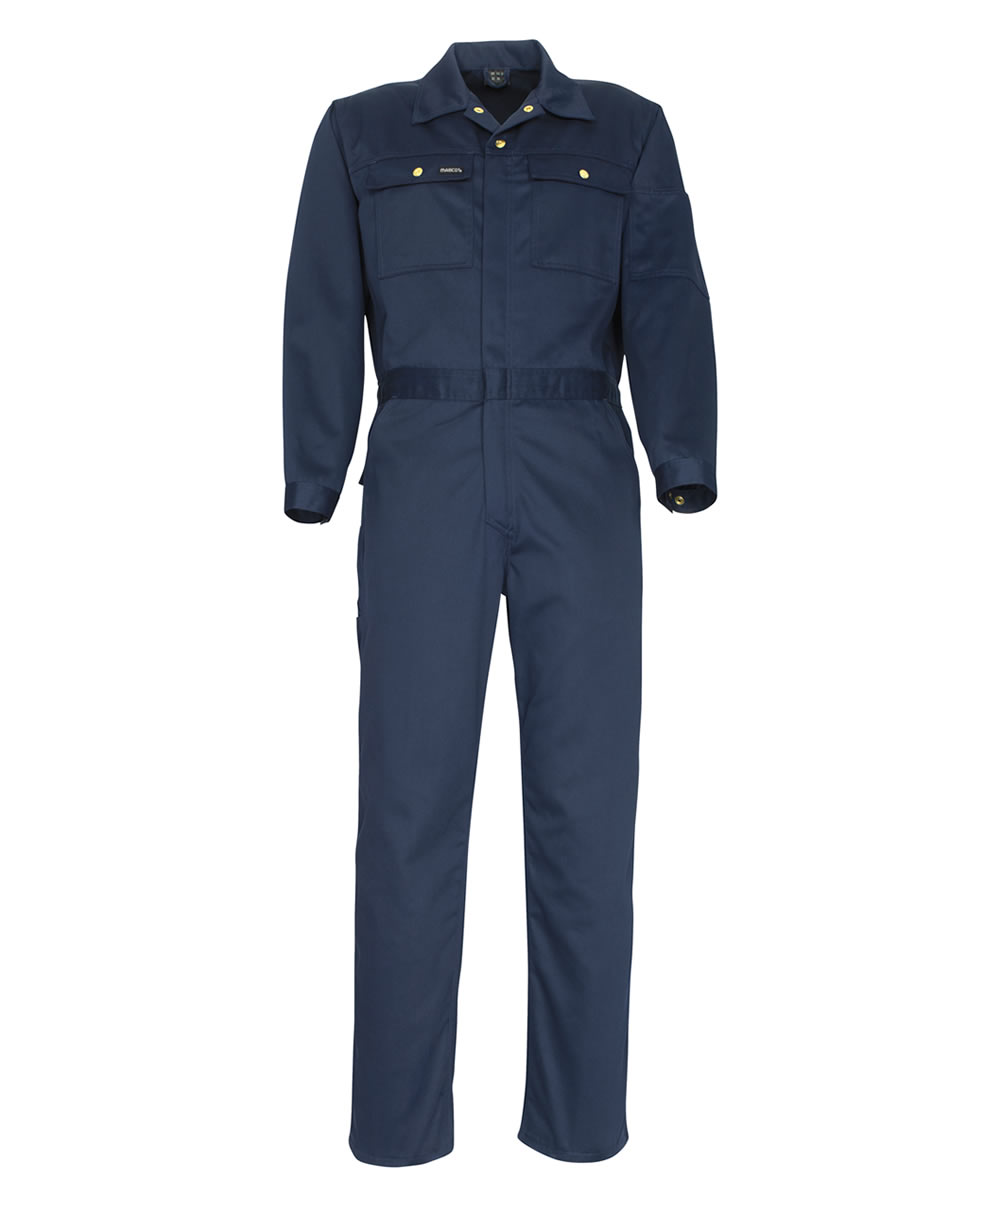 MASCOT Kentucky Coveralls